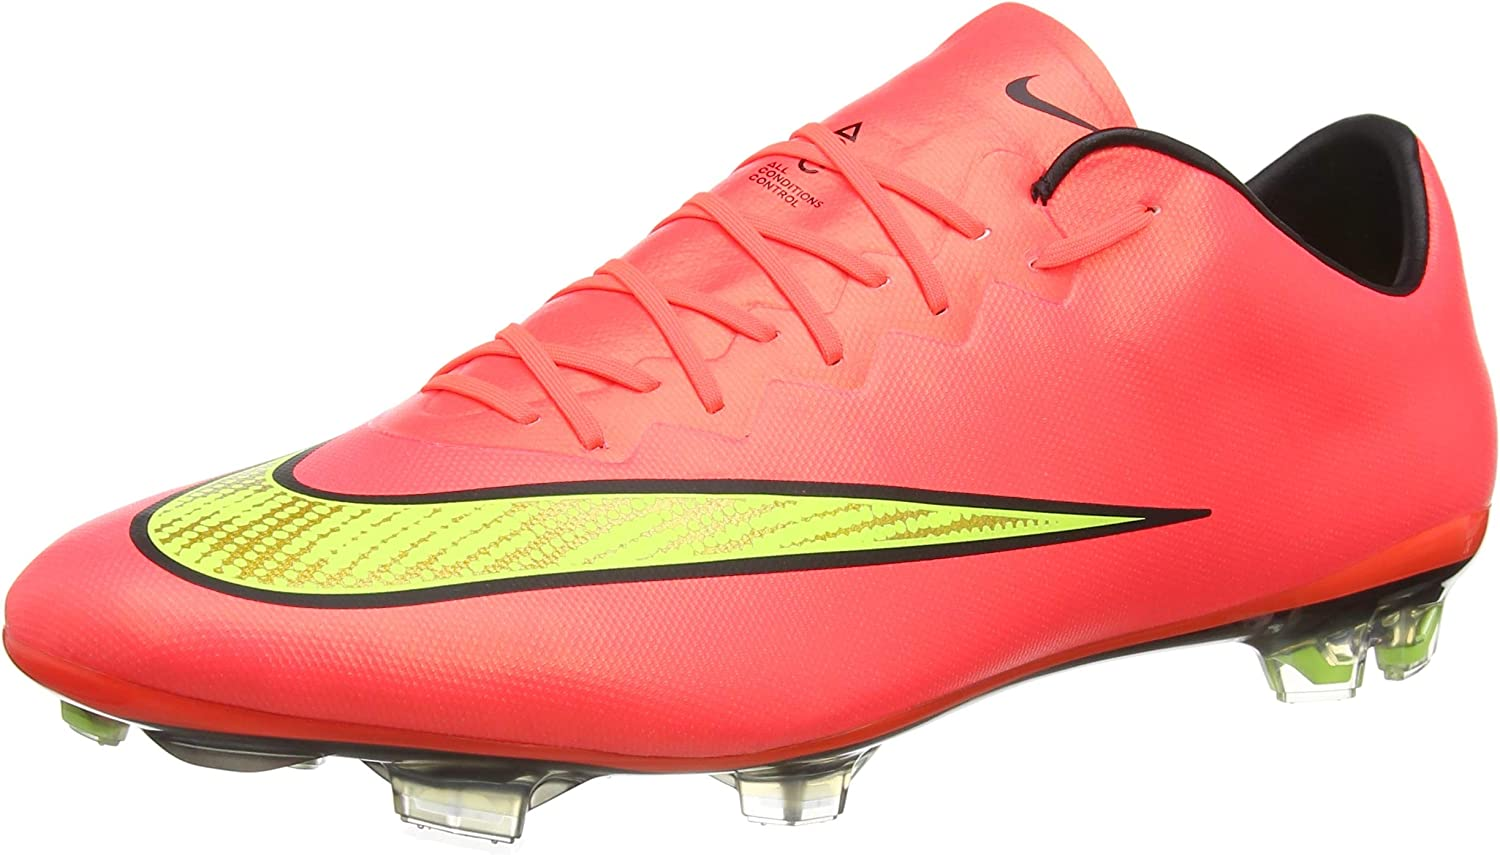 Mercurial Vapor World Cup X FG